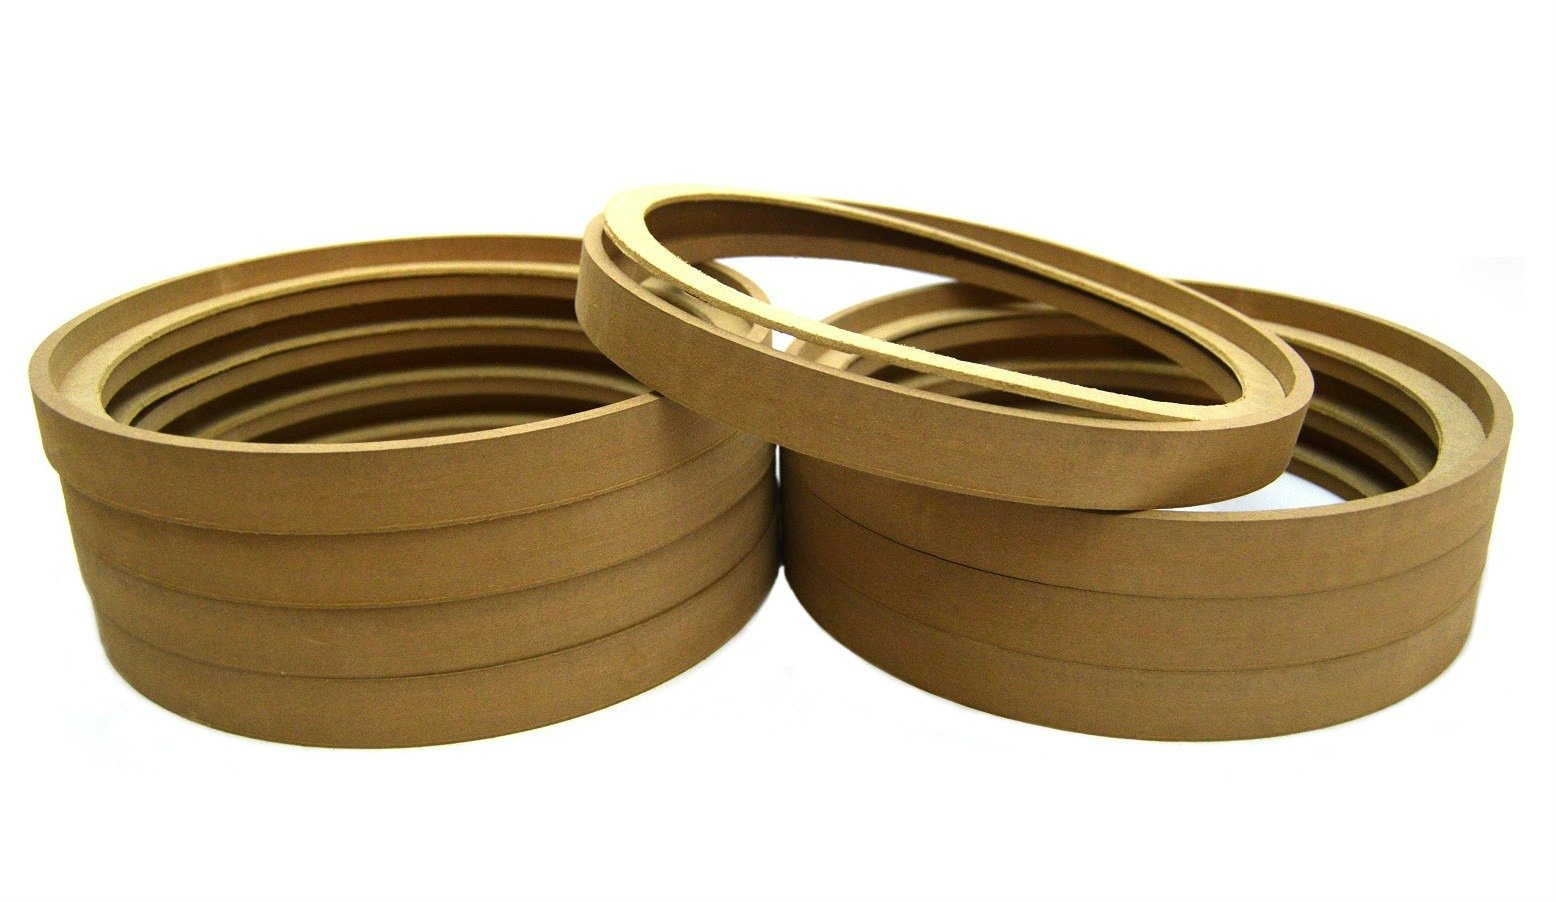 4 Pair 12'' MDF Wood Speaker Subwoofer Mounting Spacer Rings Recessed with Bezel